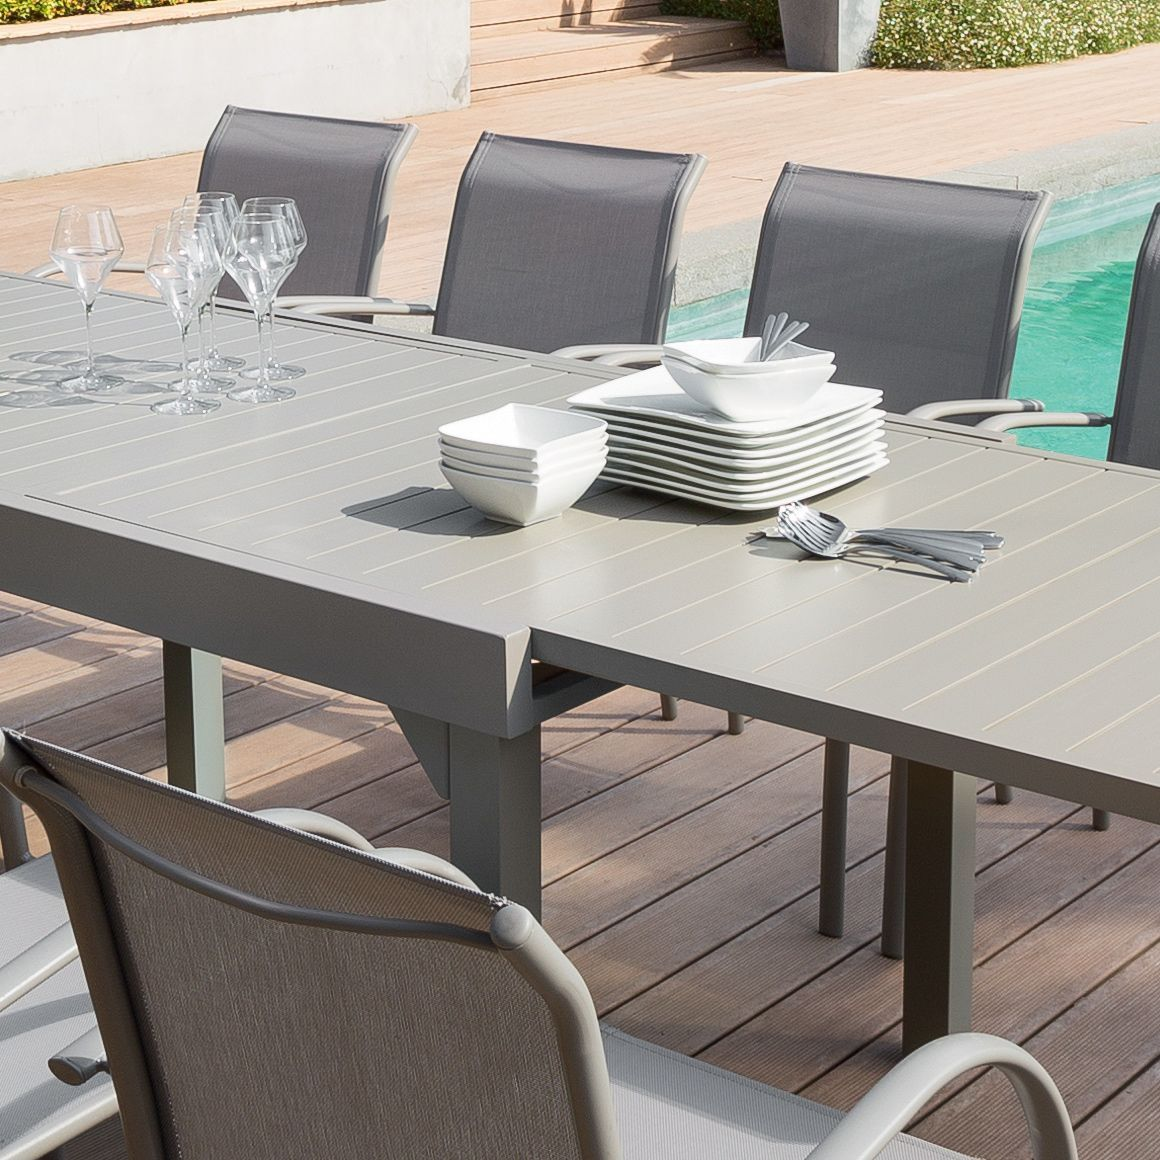 Table de jardin extensible aluminium piazza max 300 cm - Table de jardin extensible aluminium ...